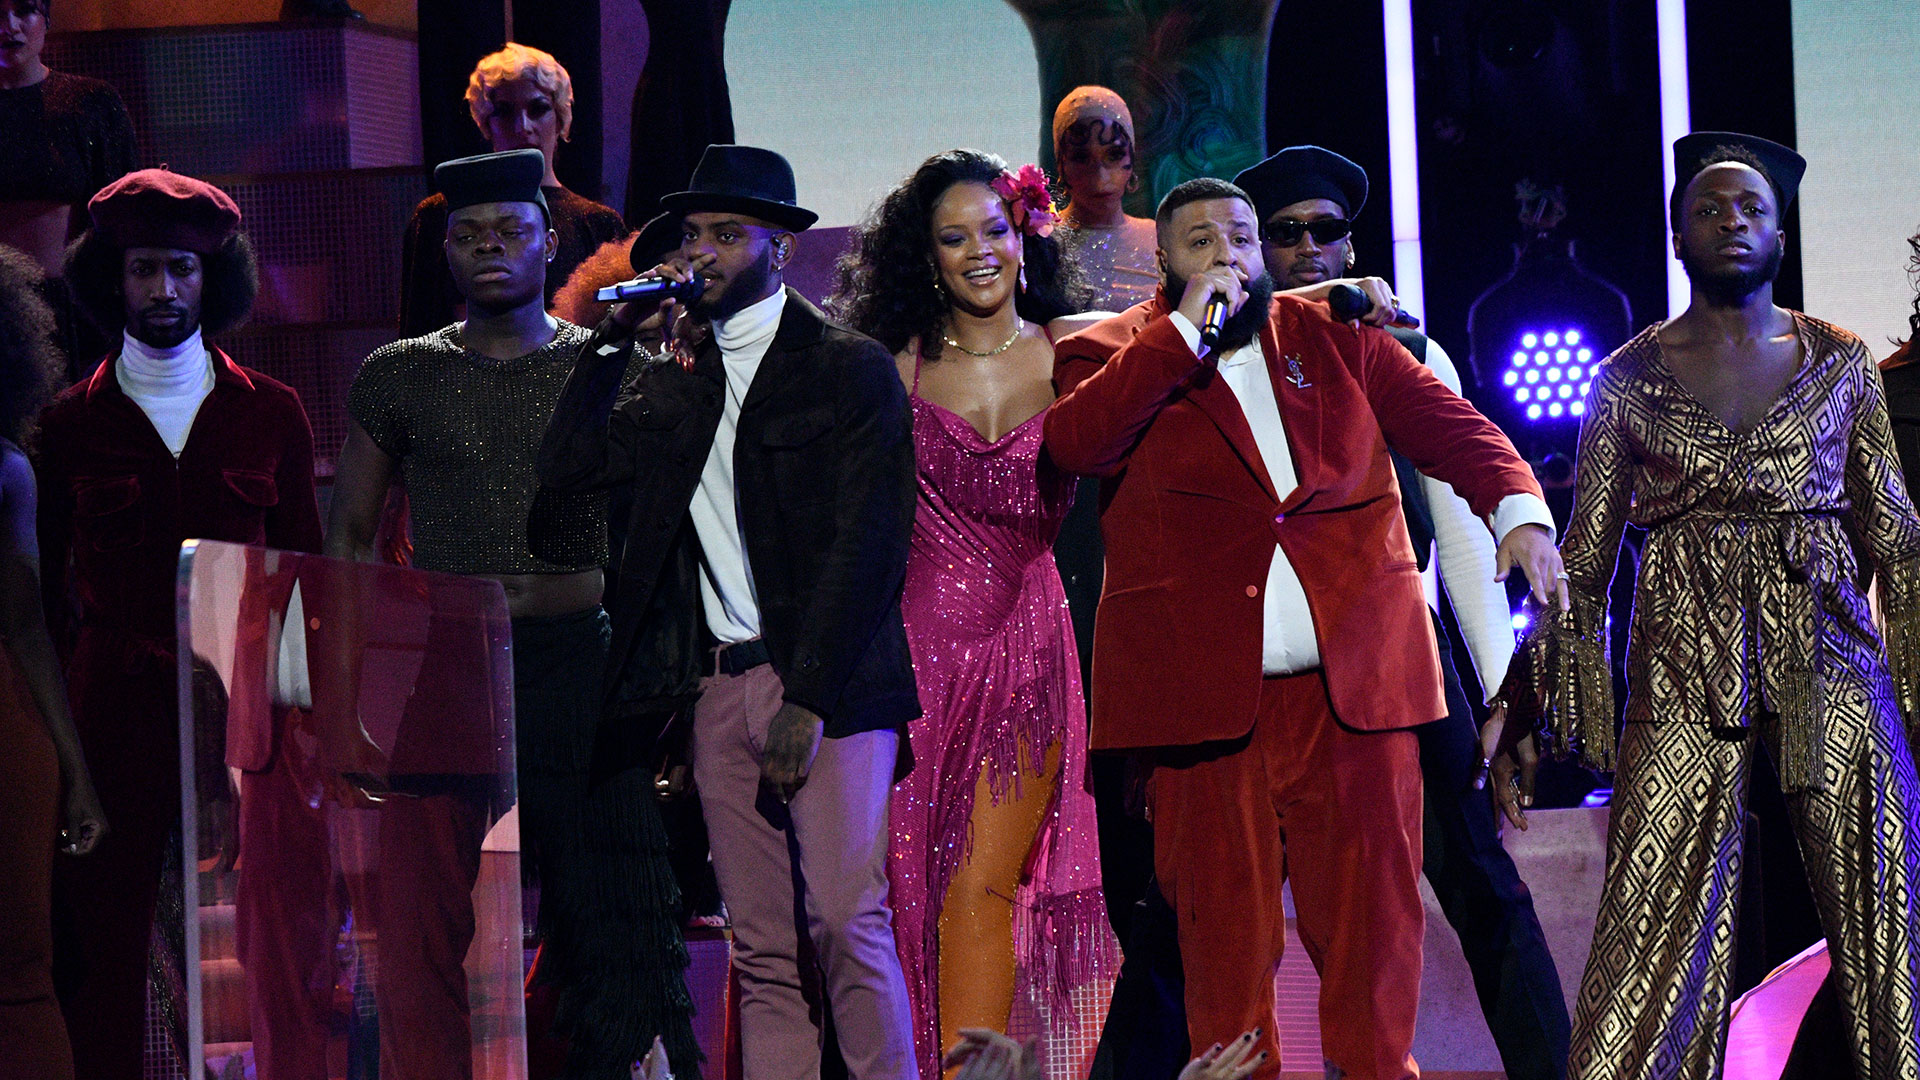 Rihanna, DJ Khaled, and Bryson Tiller ignite the stage with their popular hit song